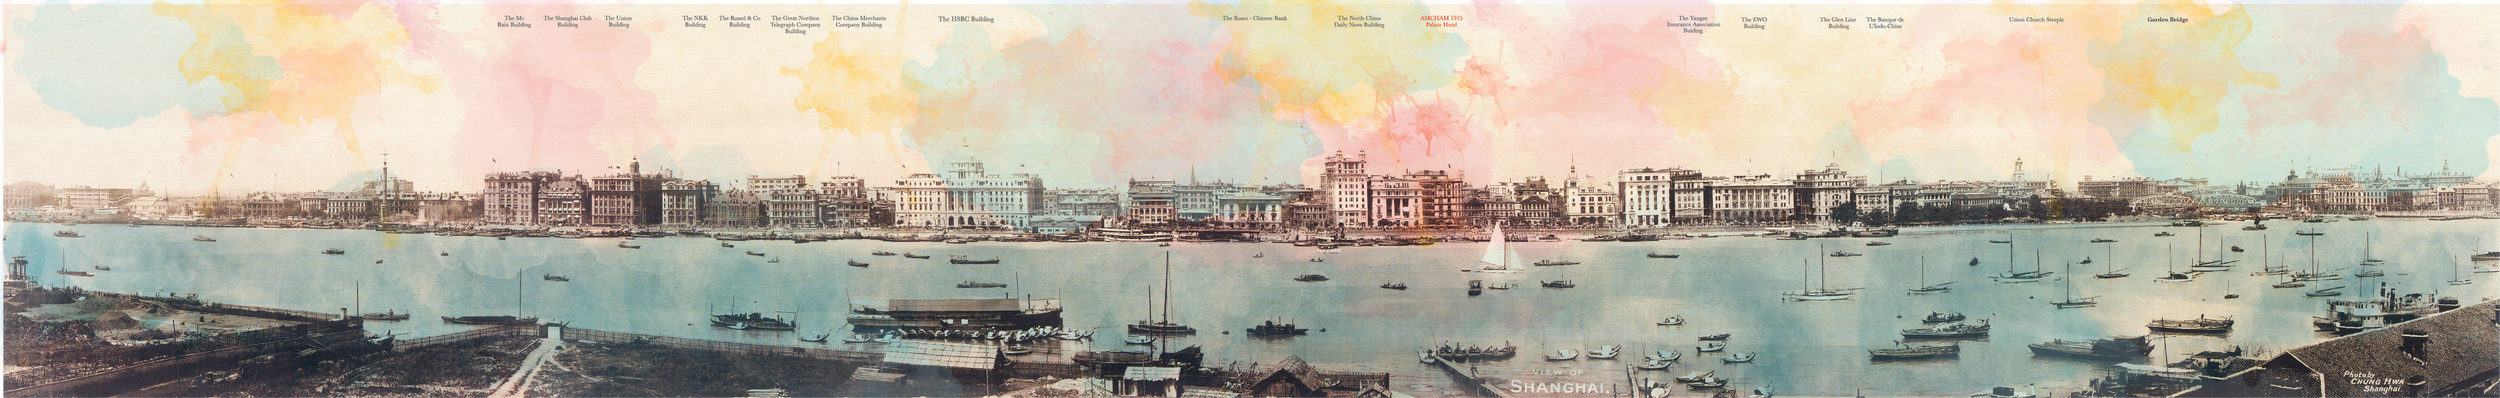 An iconic image of the Bund with watercolor interventions.